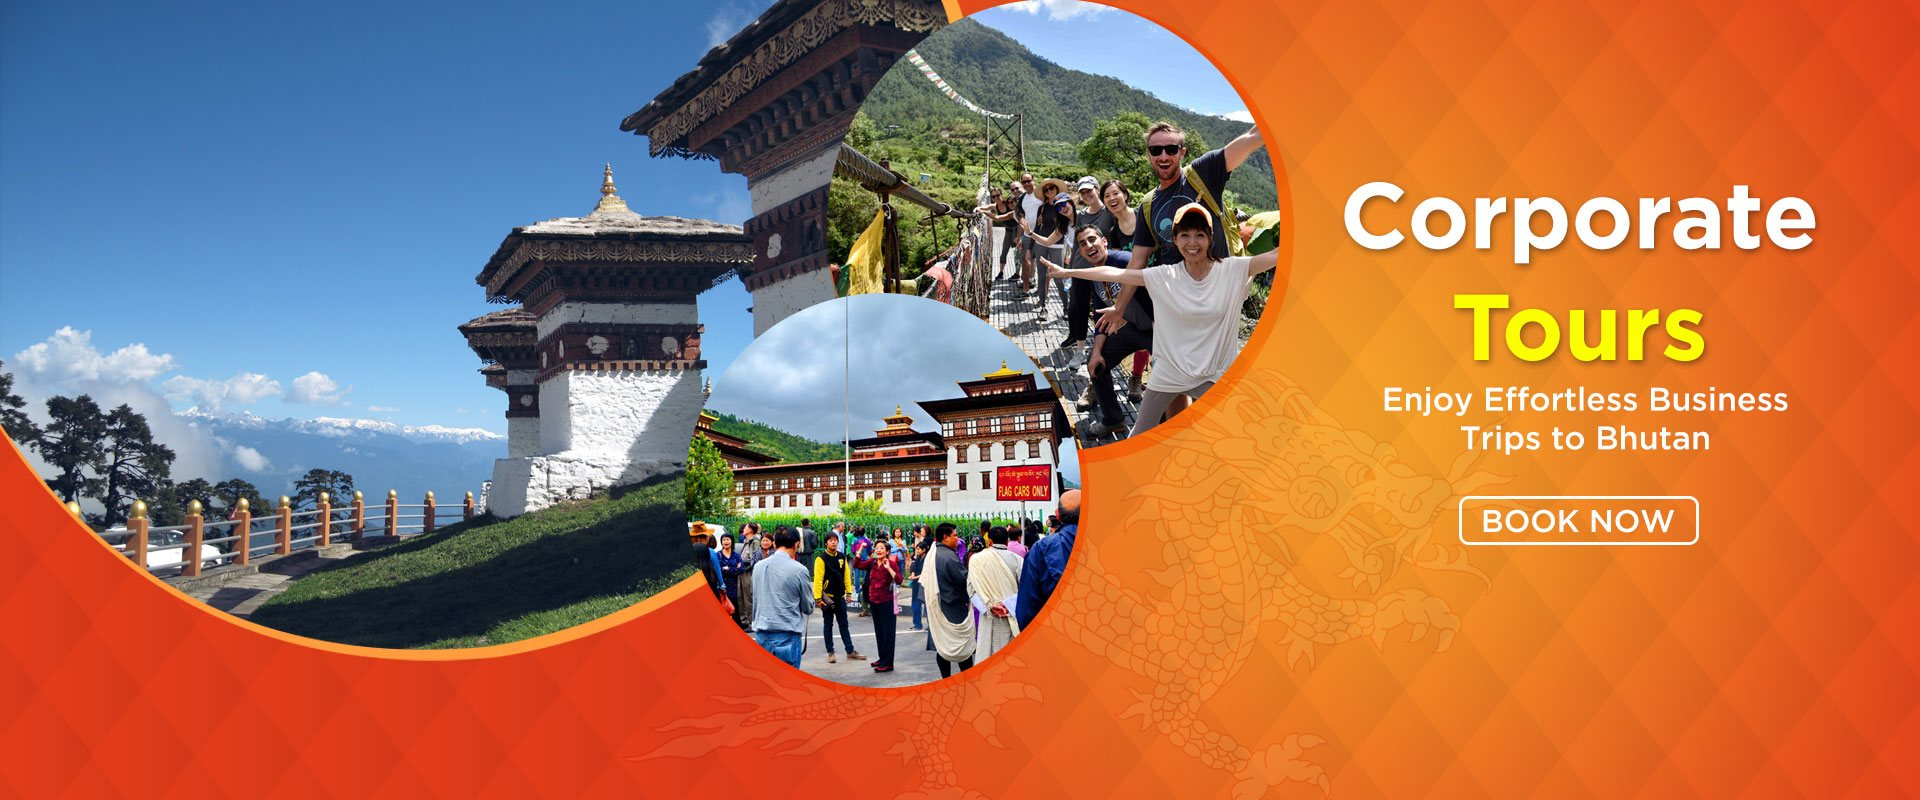 Plan Your Corporate Tour to Bhutan